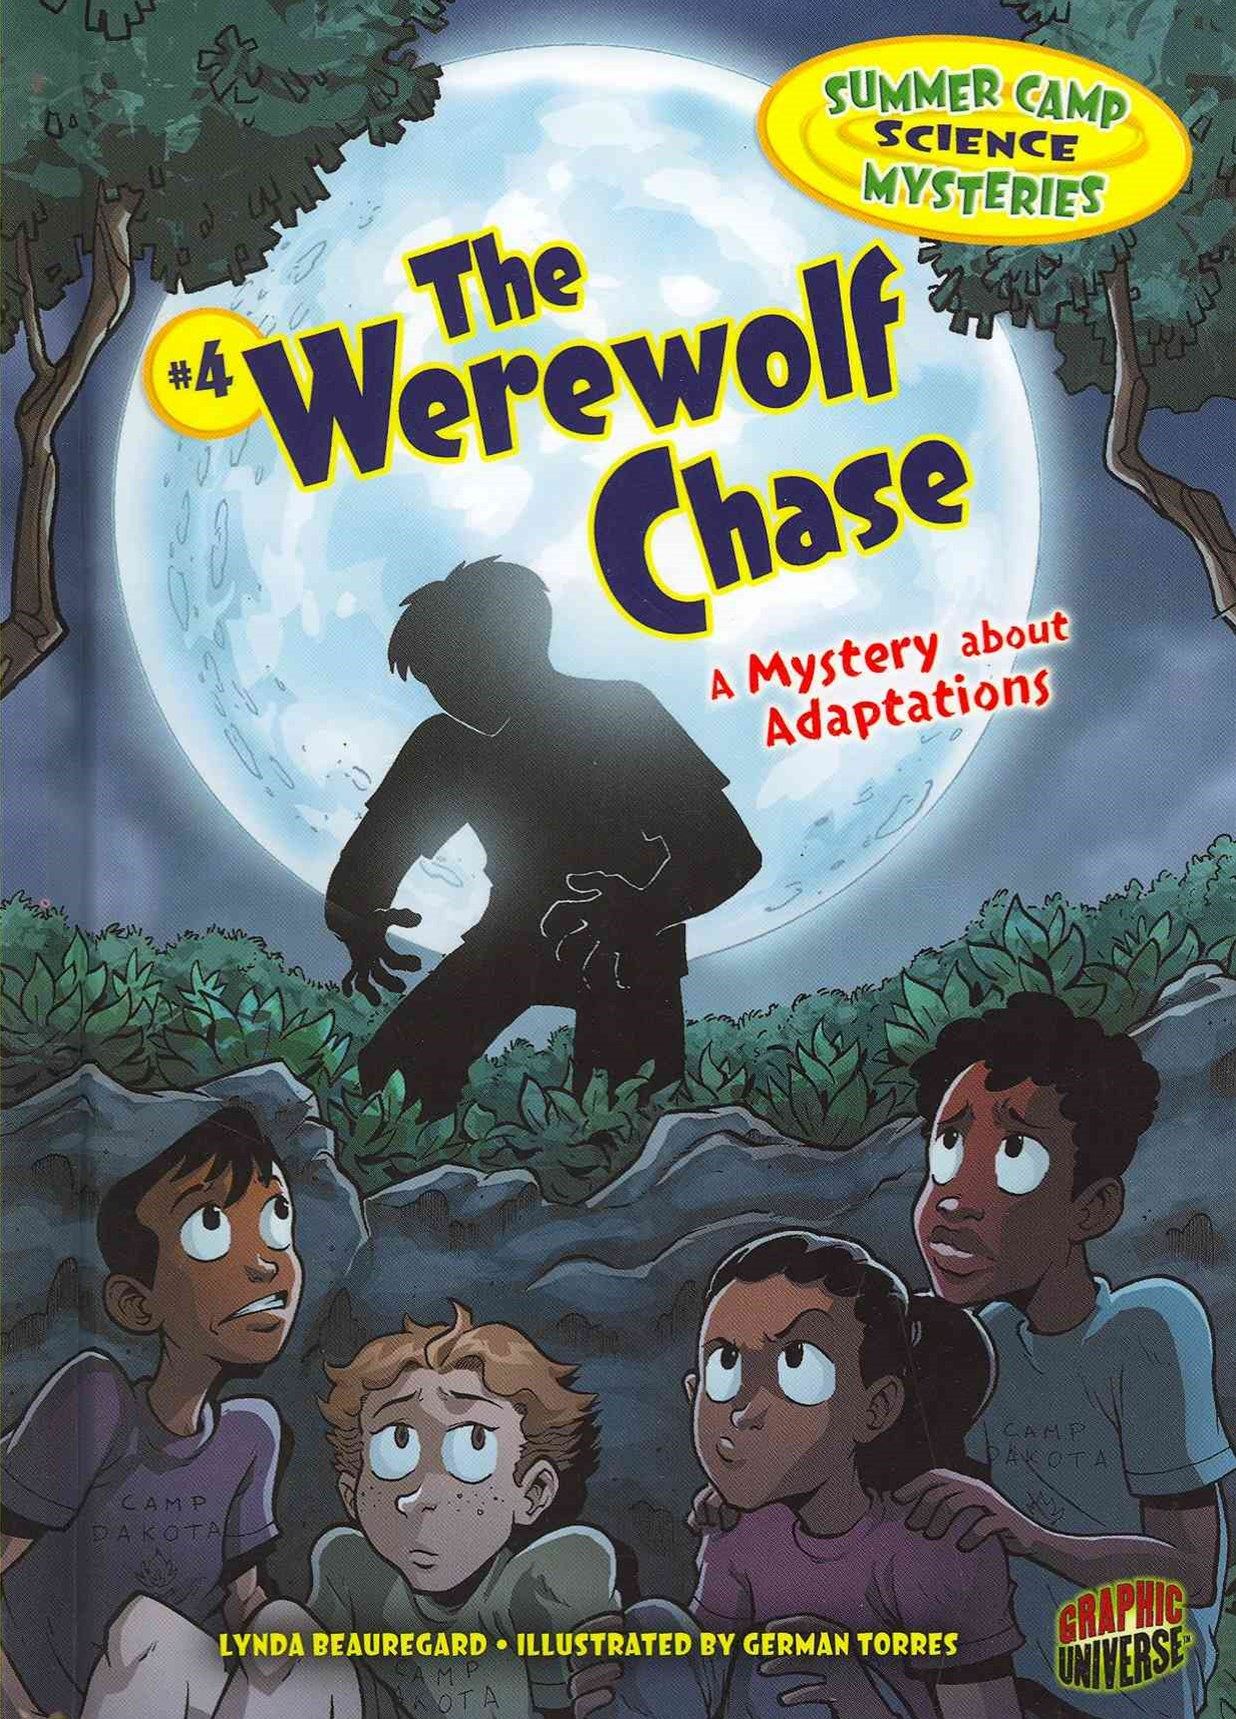 The Werewolf Chase